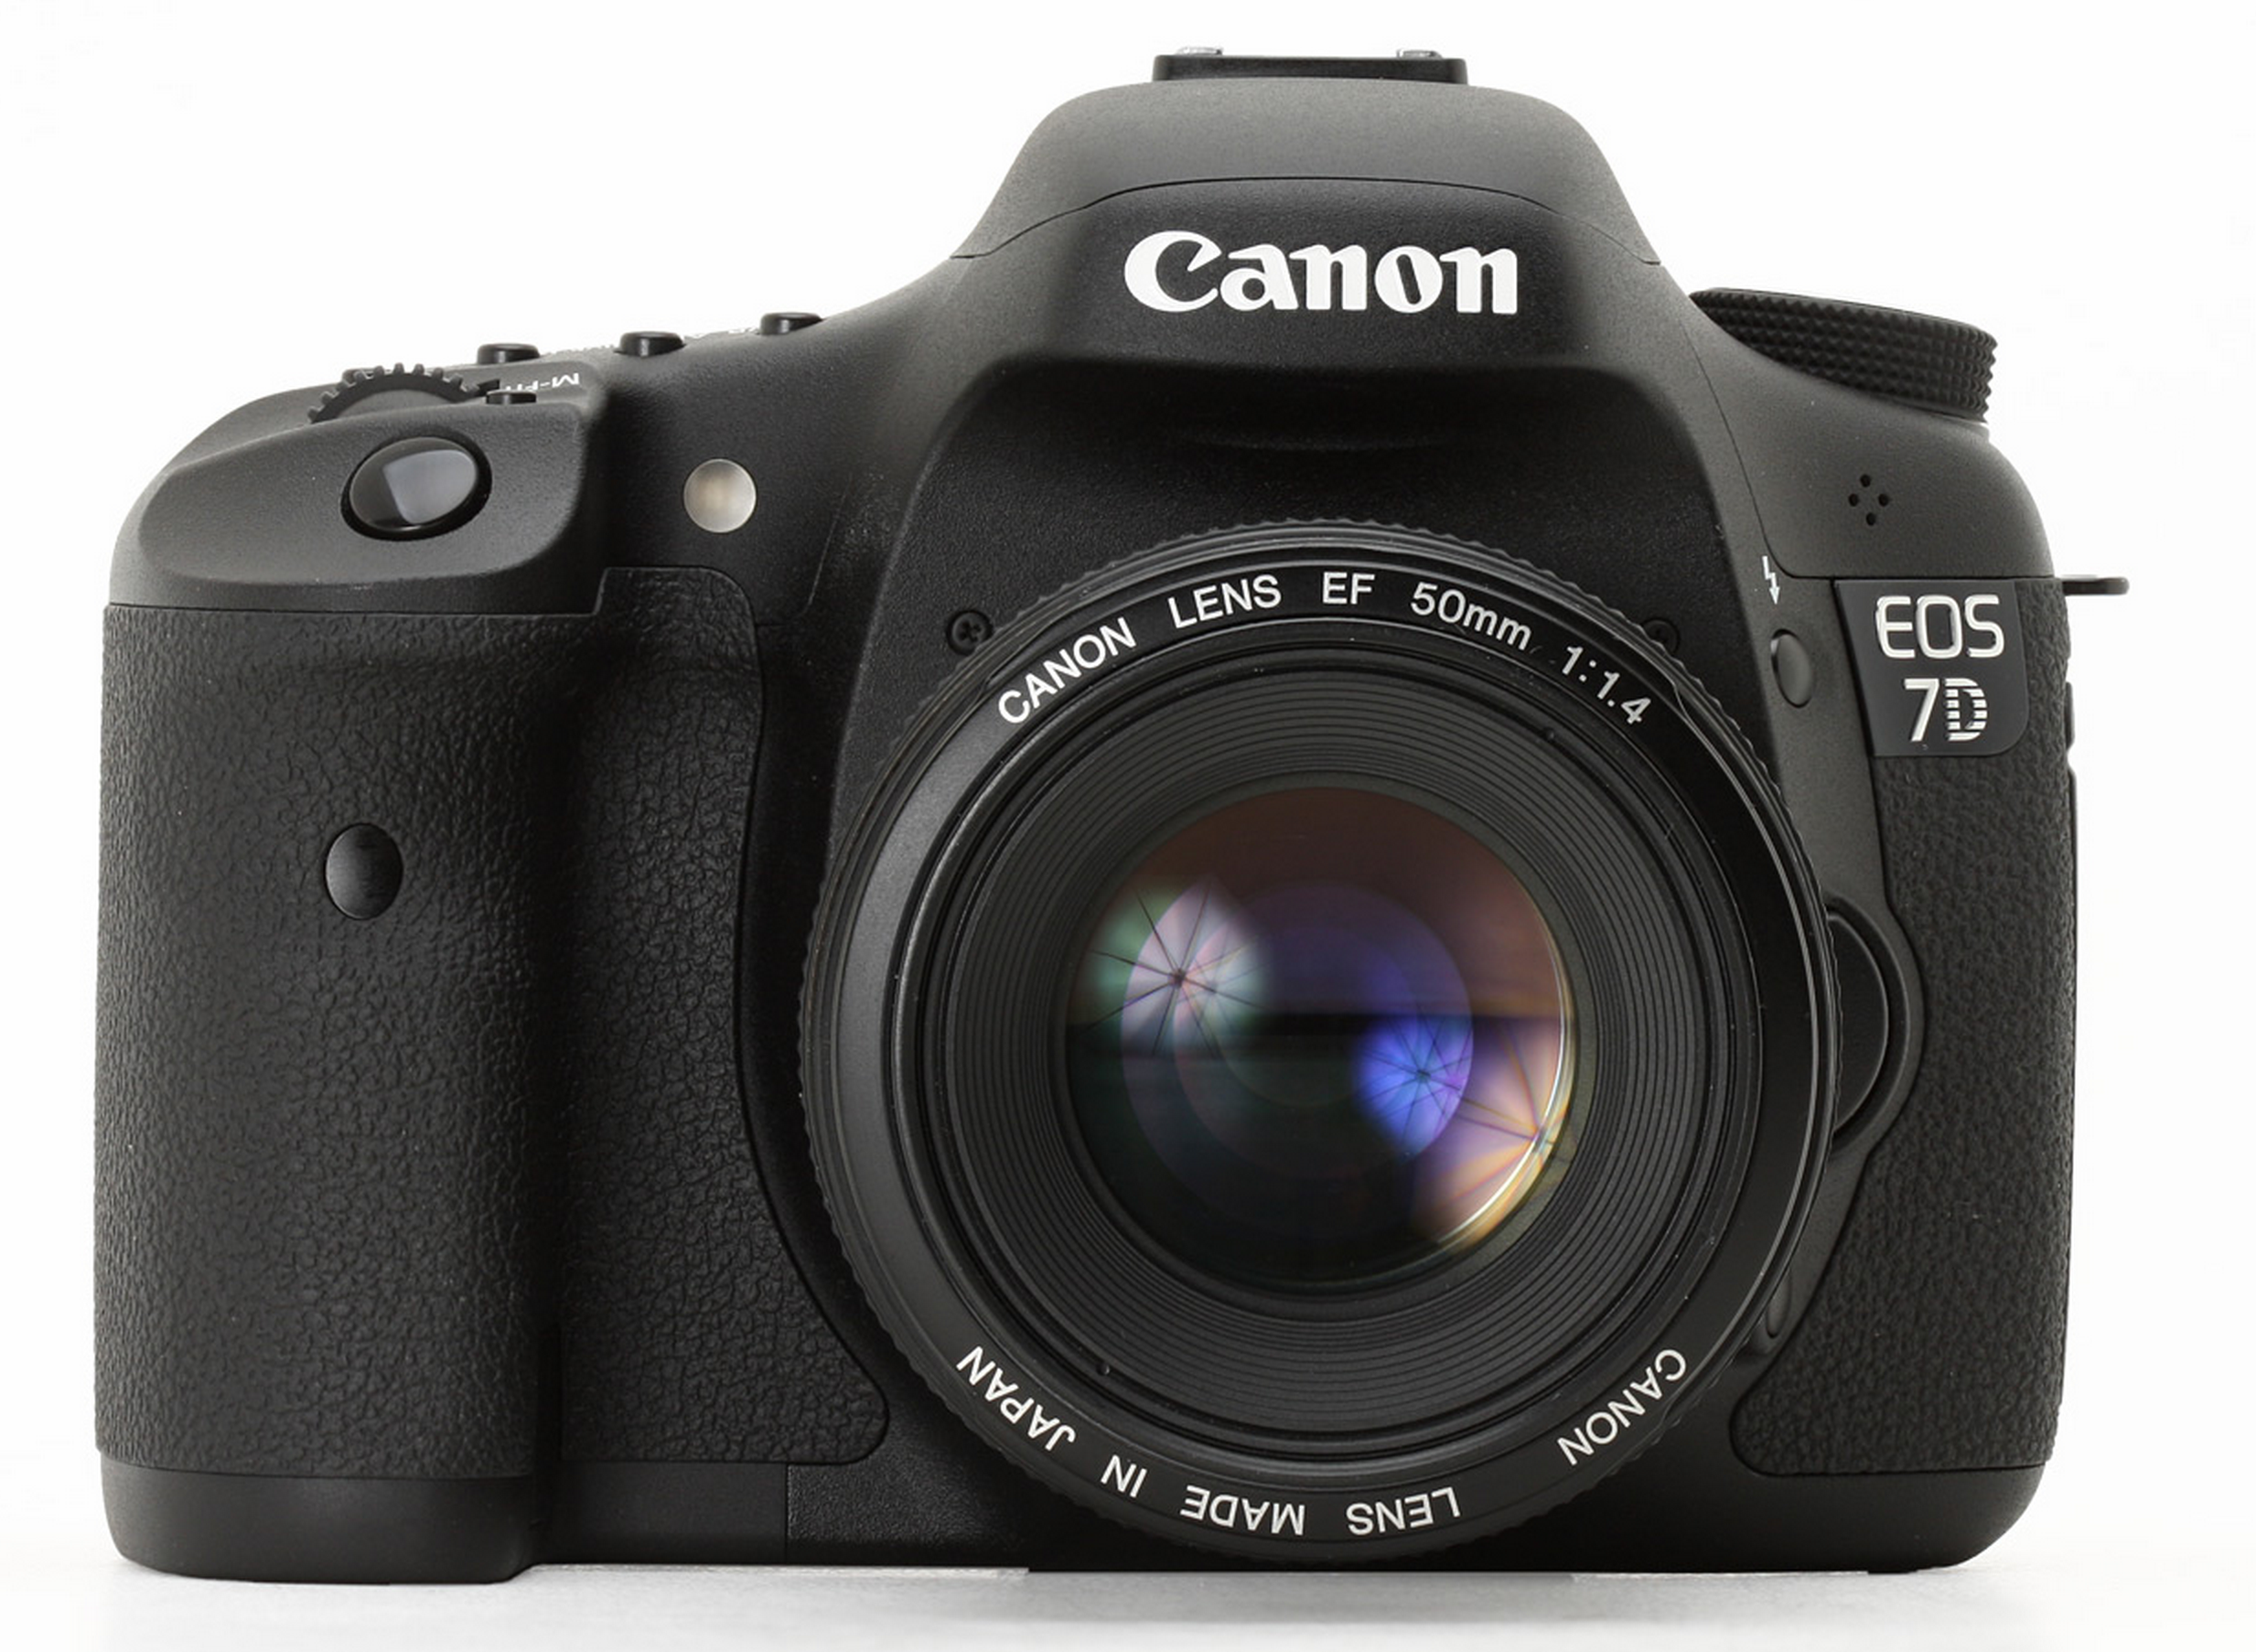 Magic Lantern did it: 24fps raw video from the Canon 5D Mark III